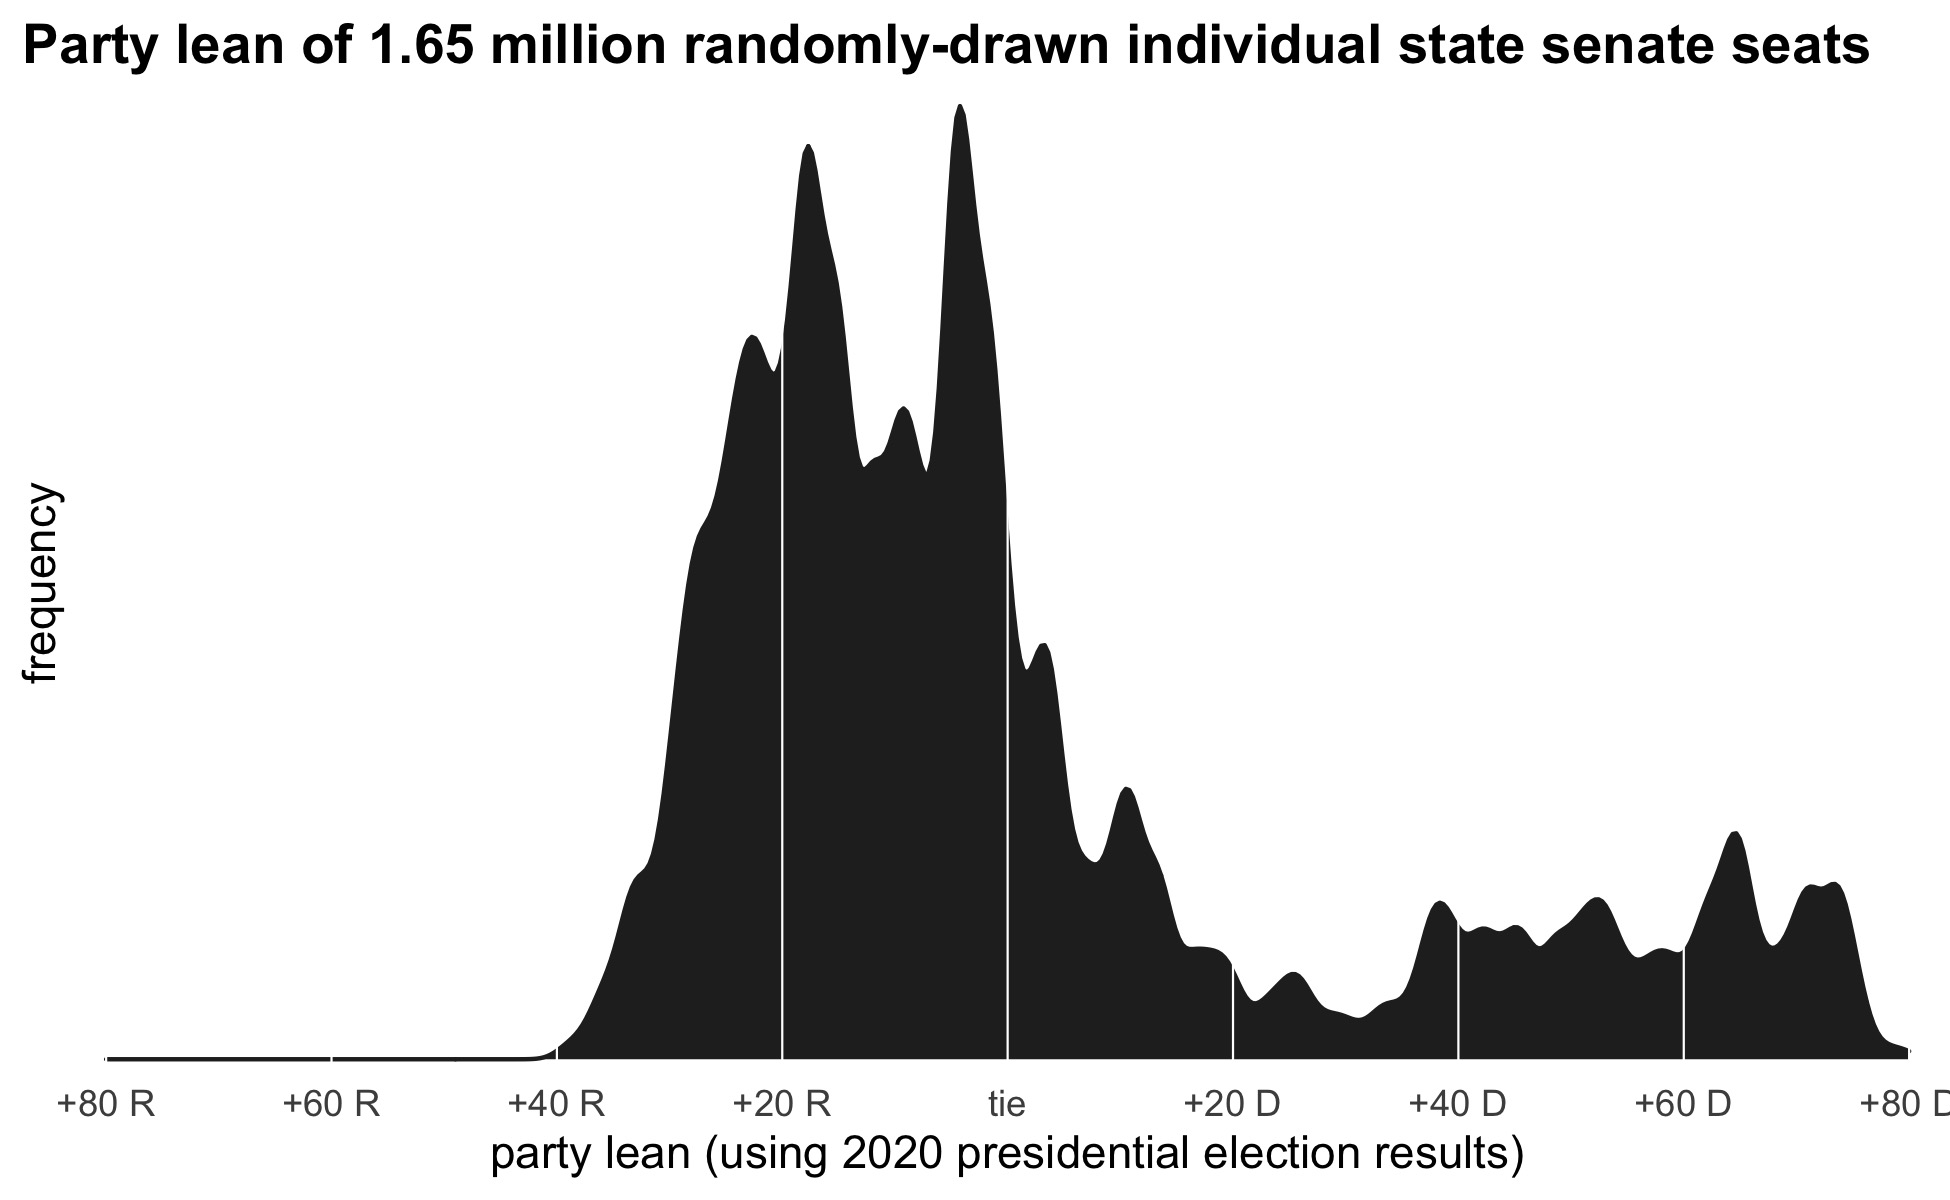 density plot showing the lean of each seat from the ensemble of 50,000 random maps